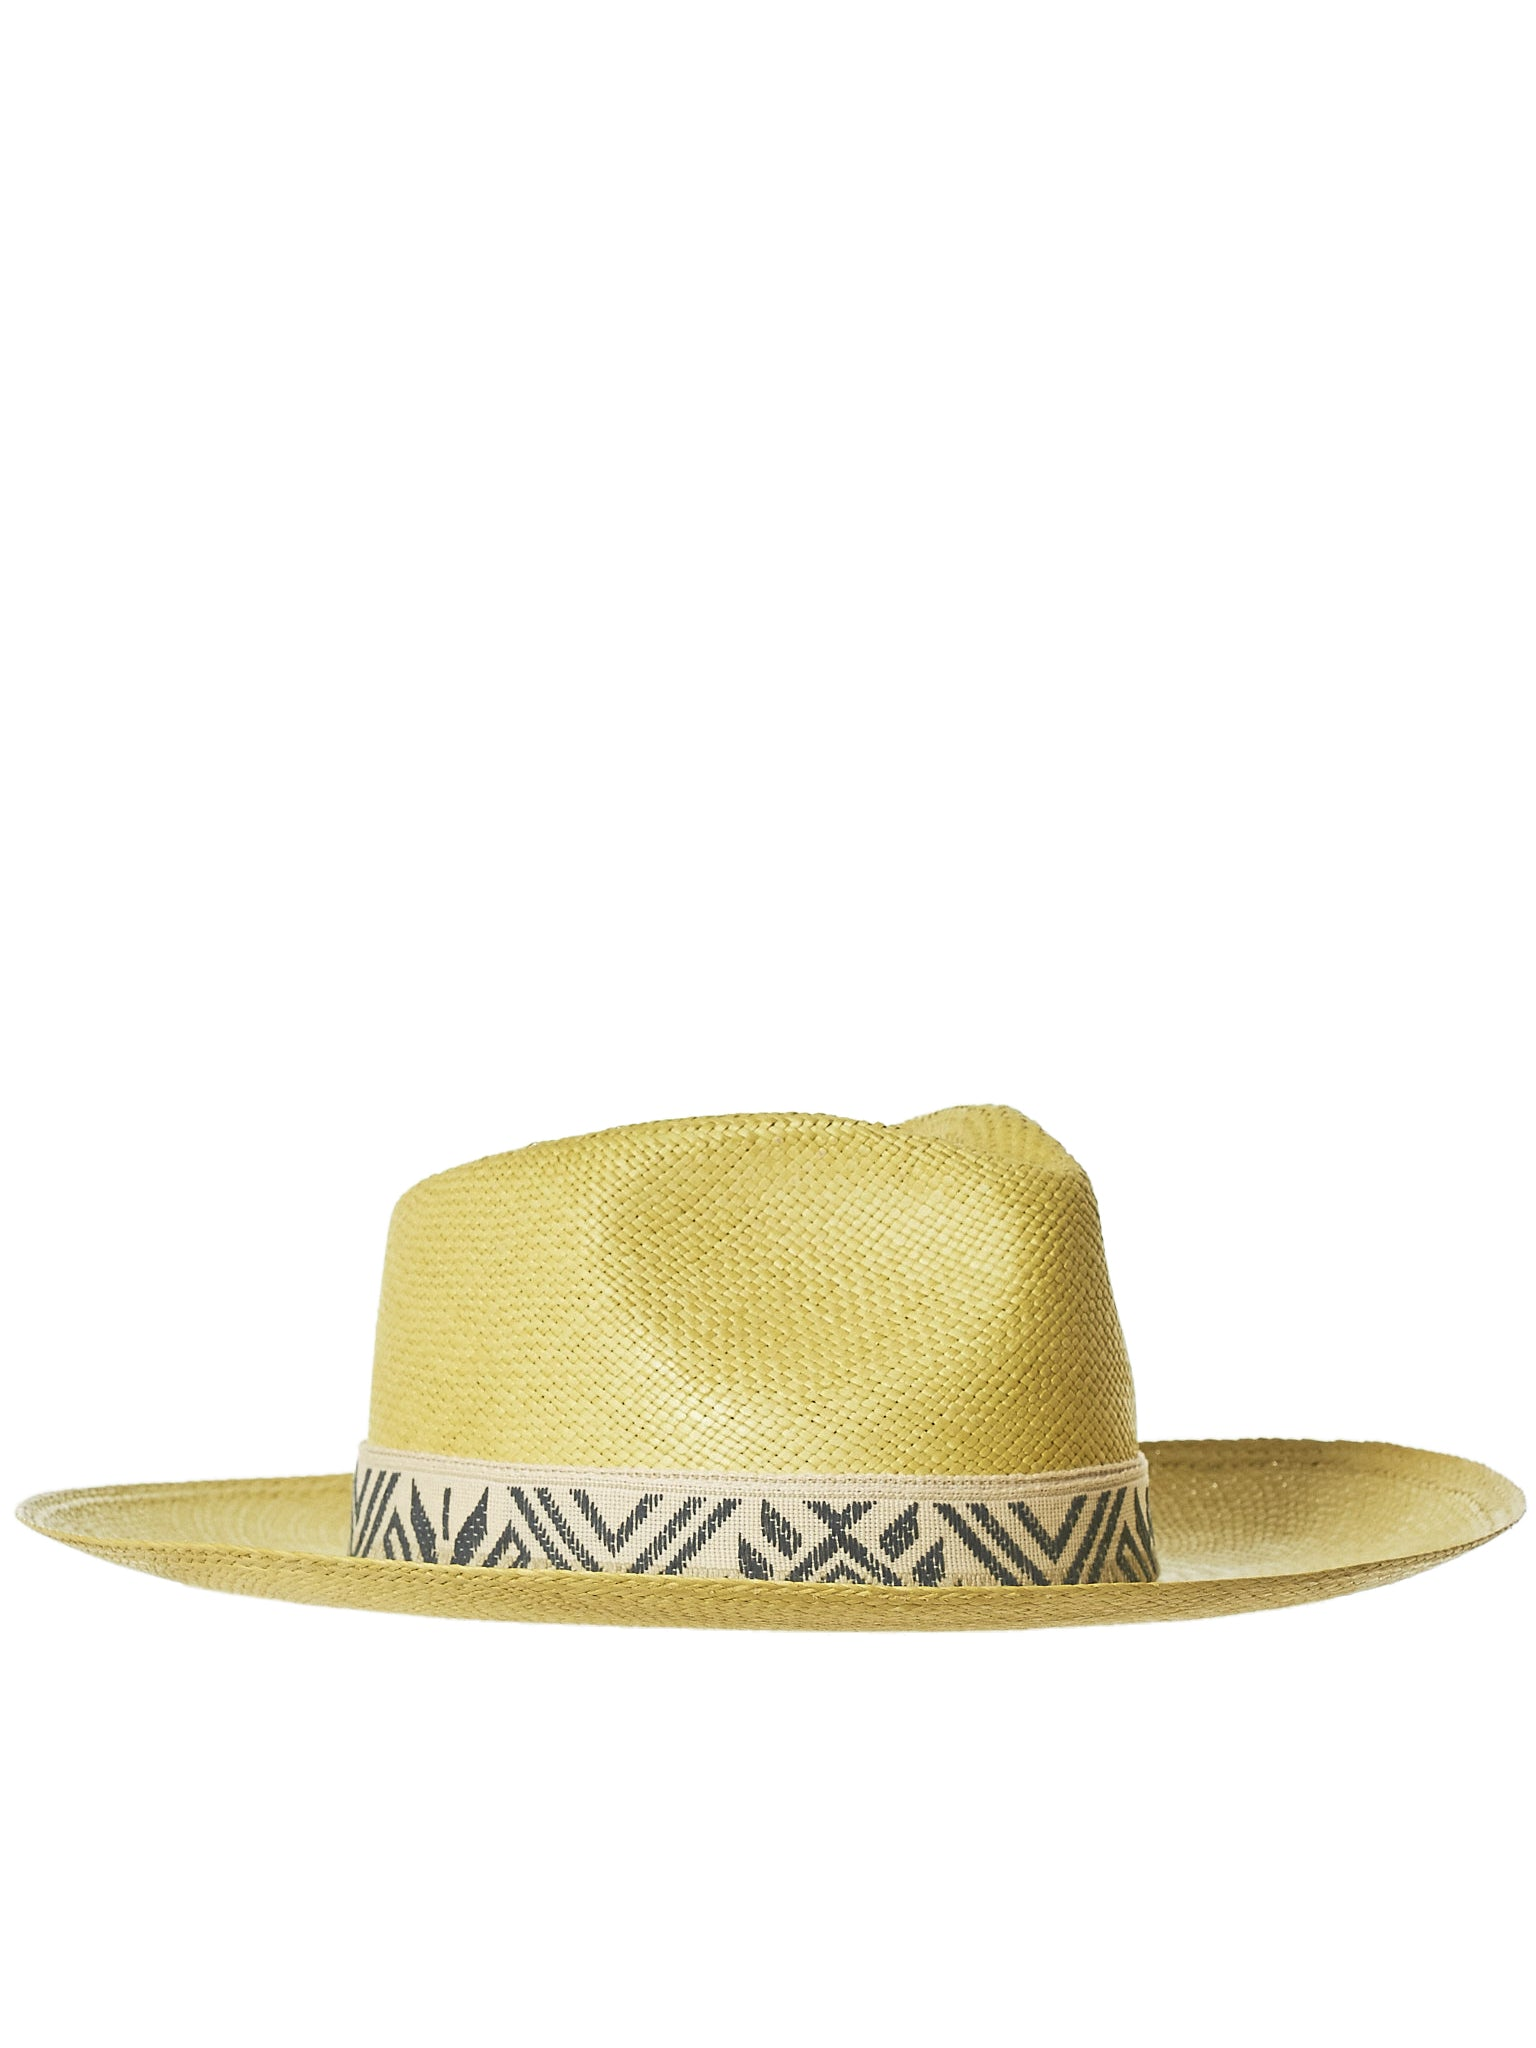 Creased Straw Hat (NATIV-STRAW-YELLOW)